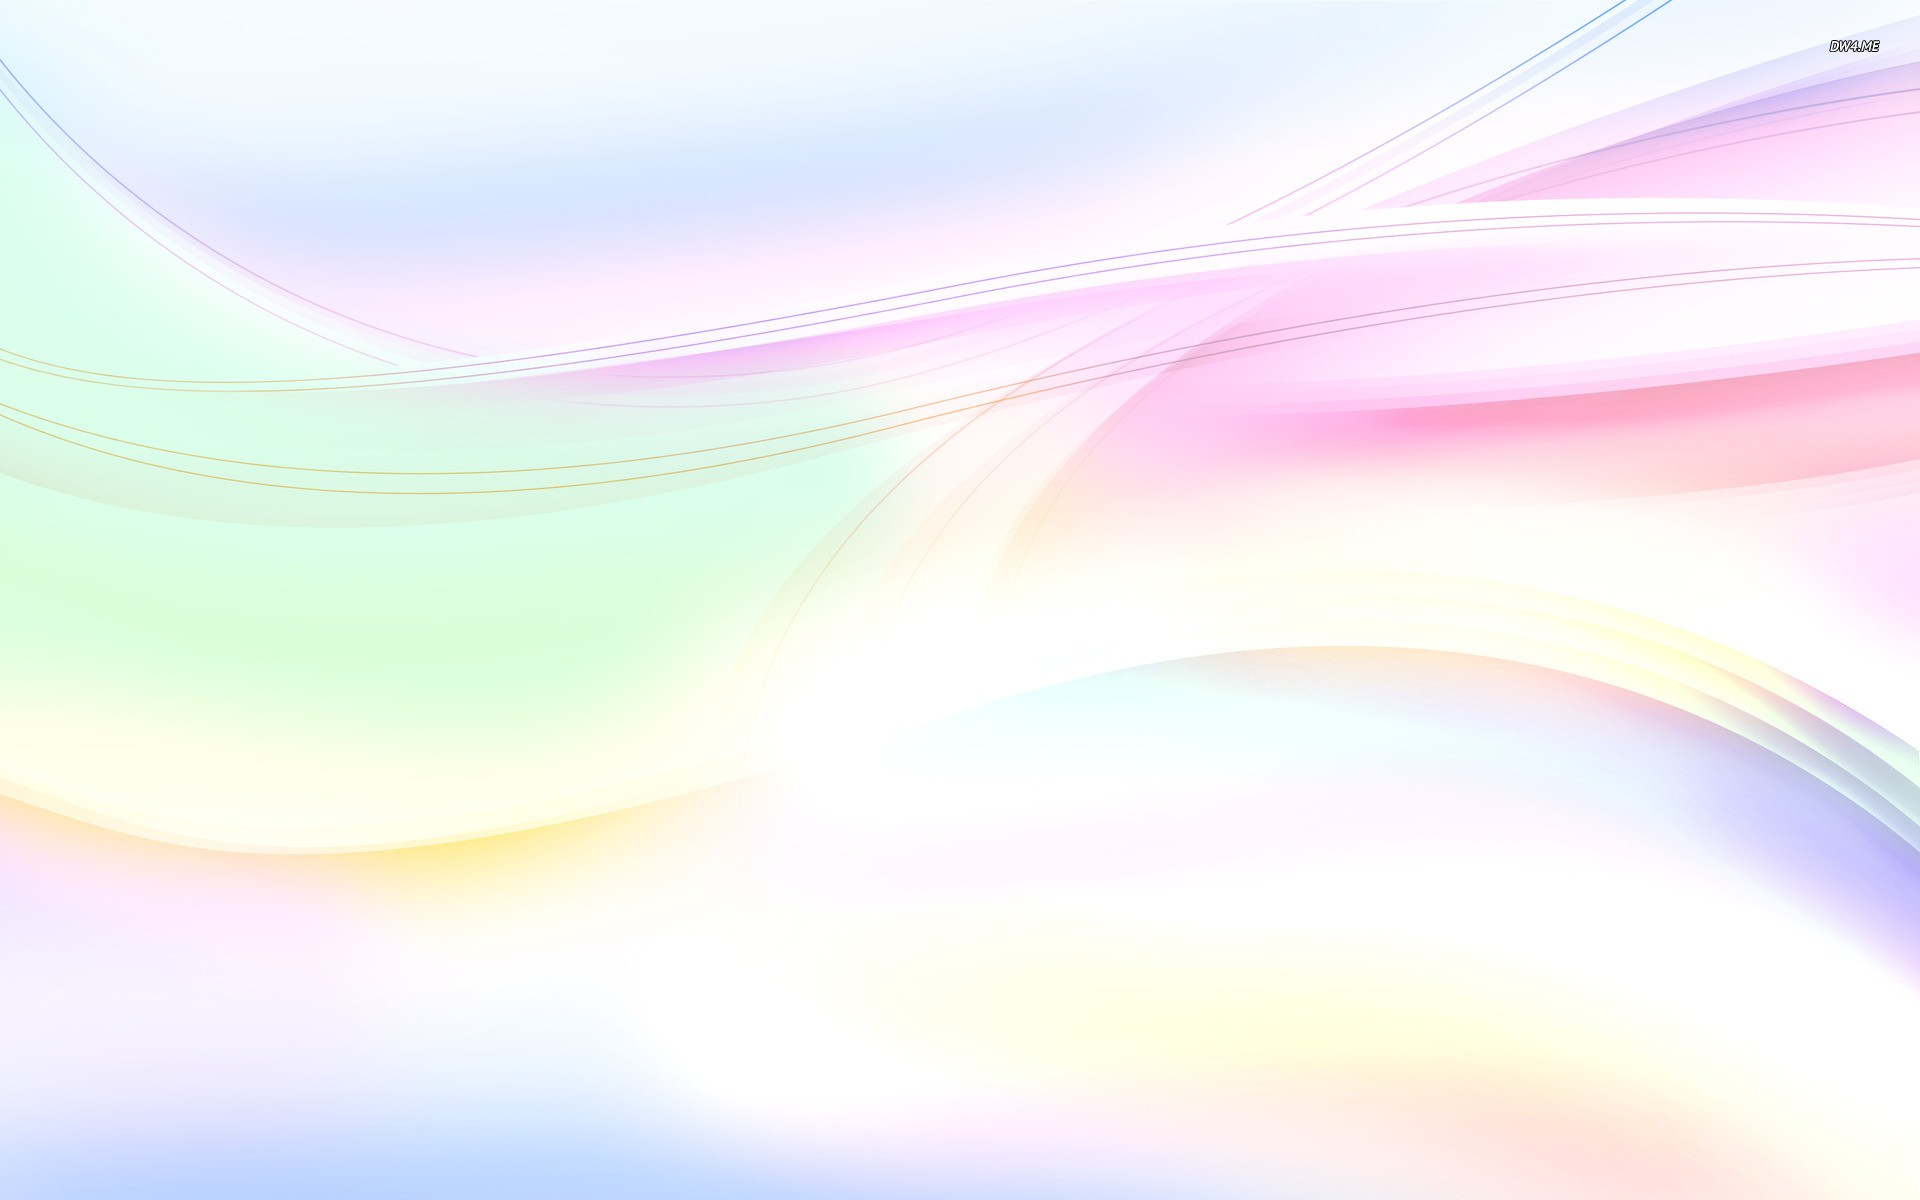 22 pastel tumblr backgrounds download free hd wallpapers for desktop mobile laptop in any - Pastel background hd ...